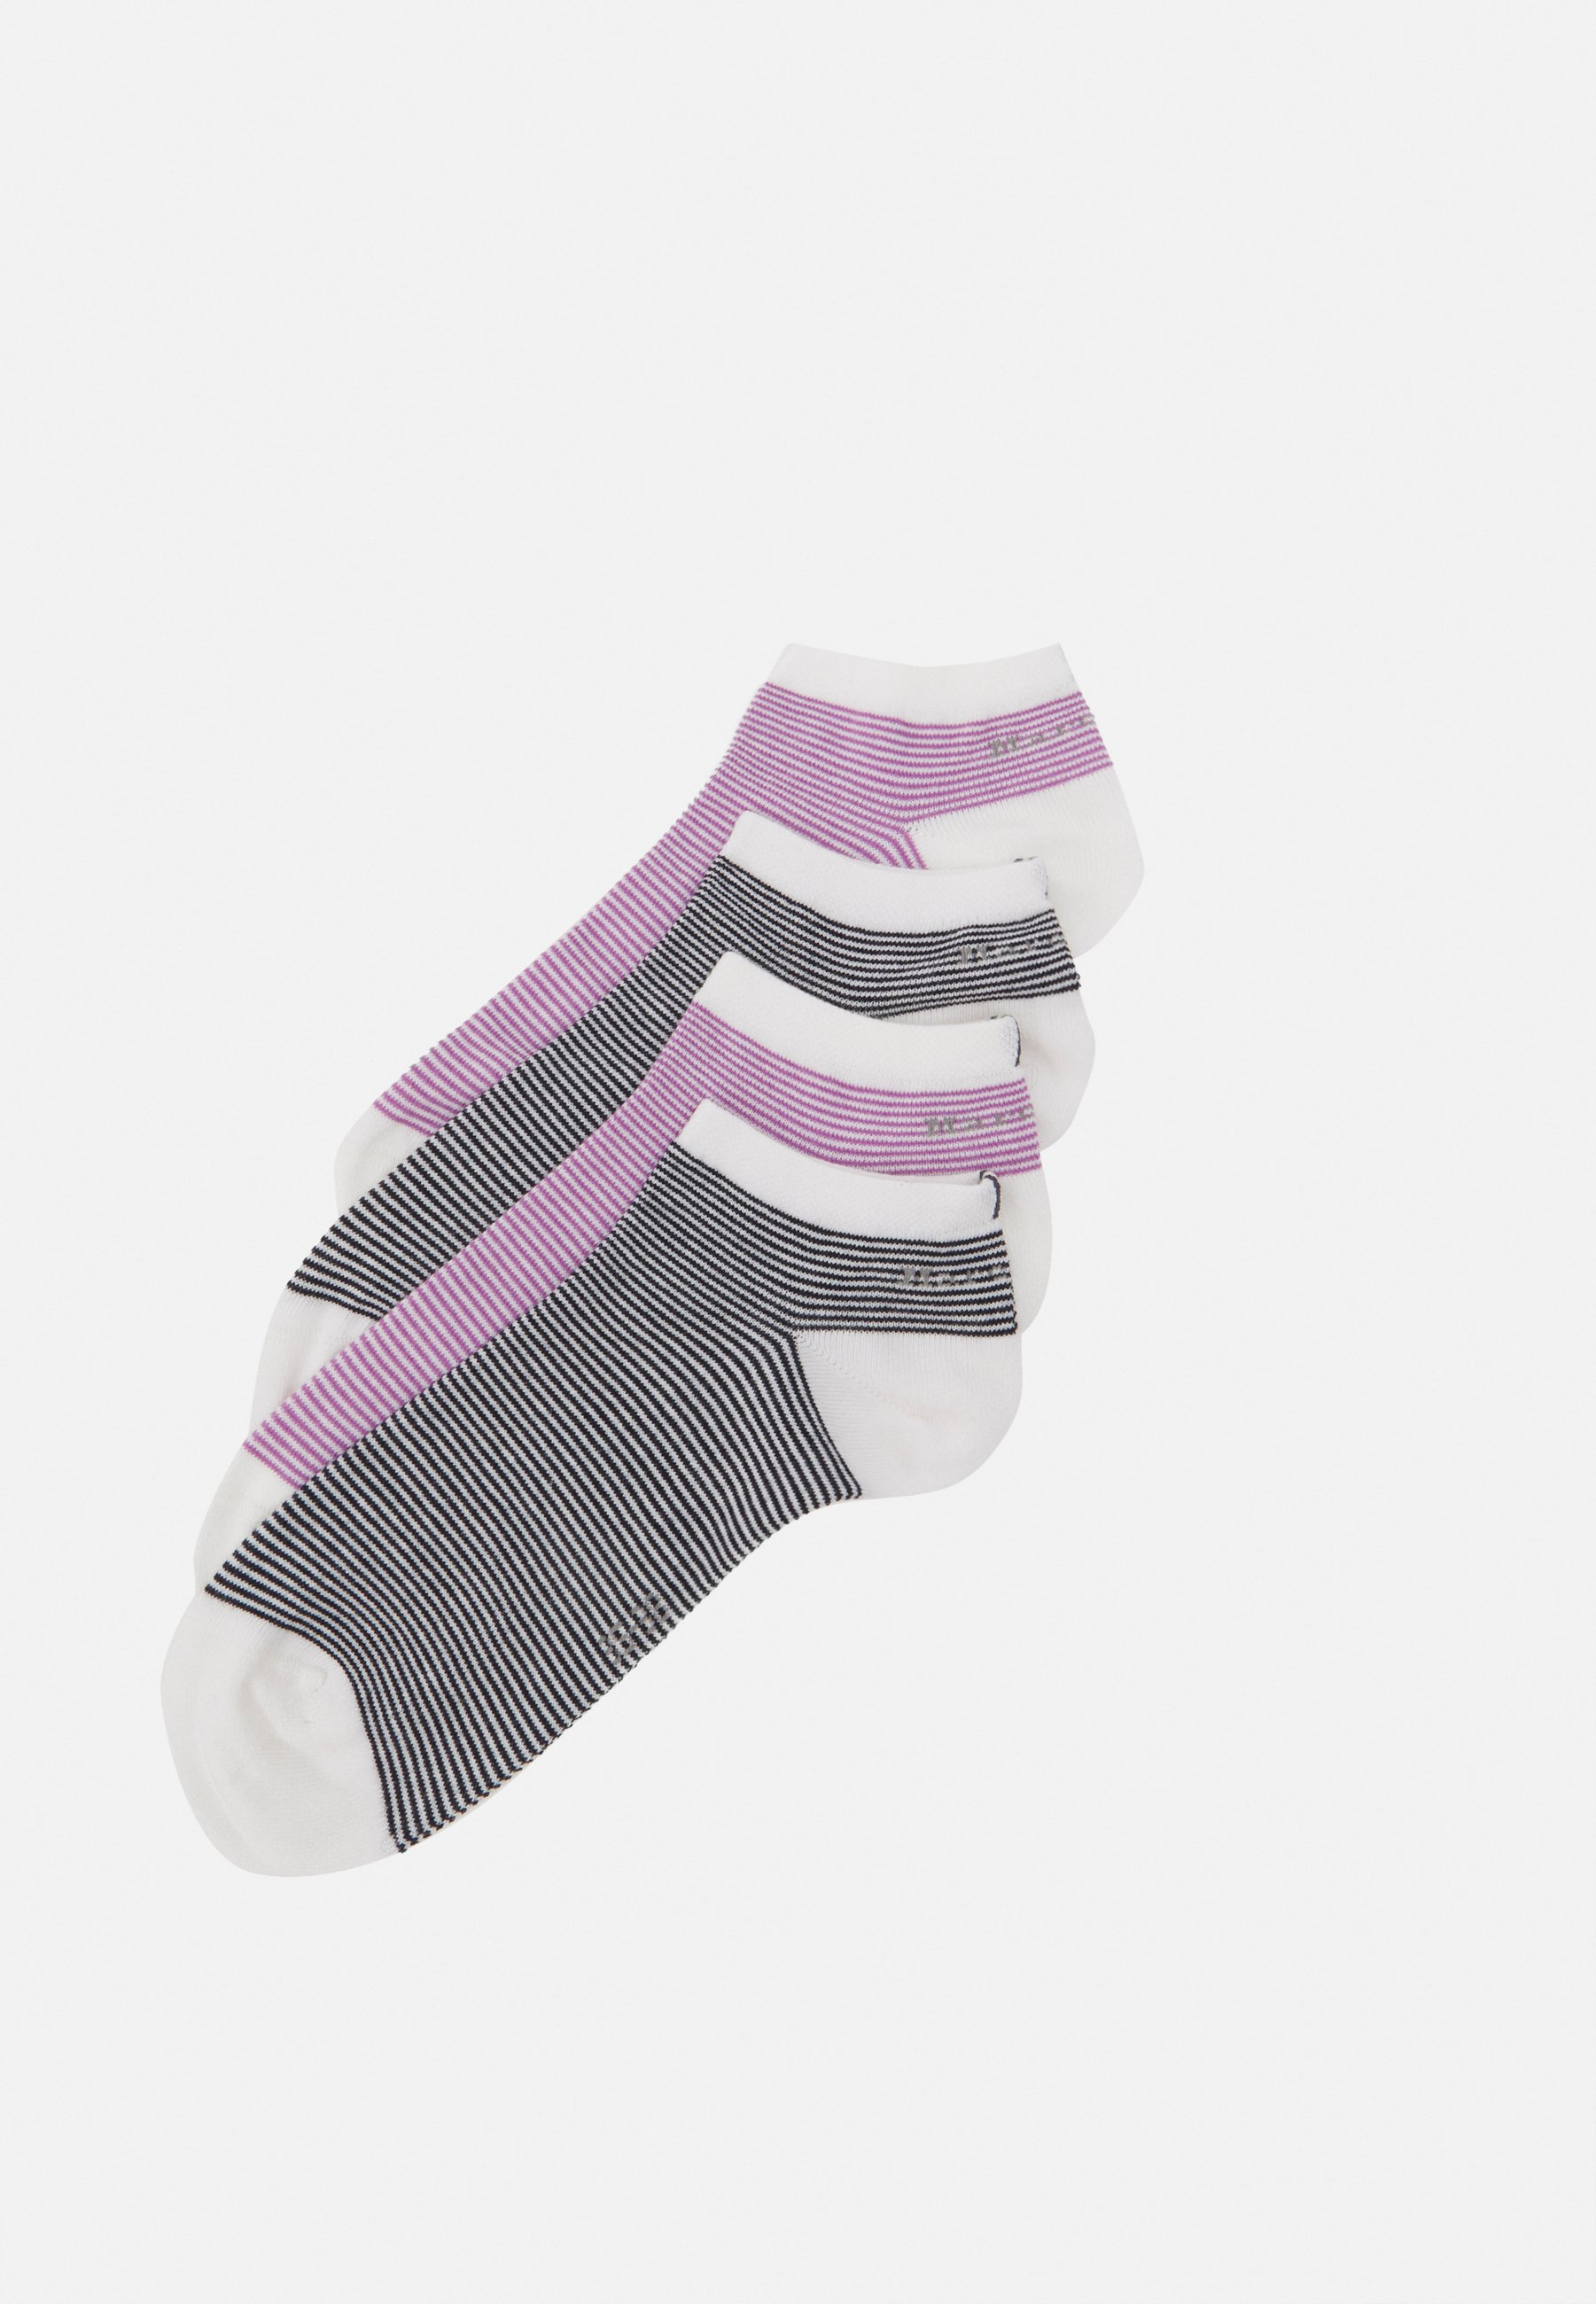 Femme SNEAKER 4 PACK - Chaussettes